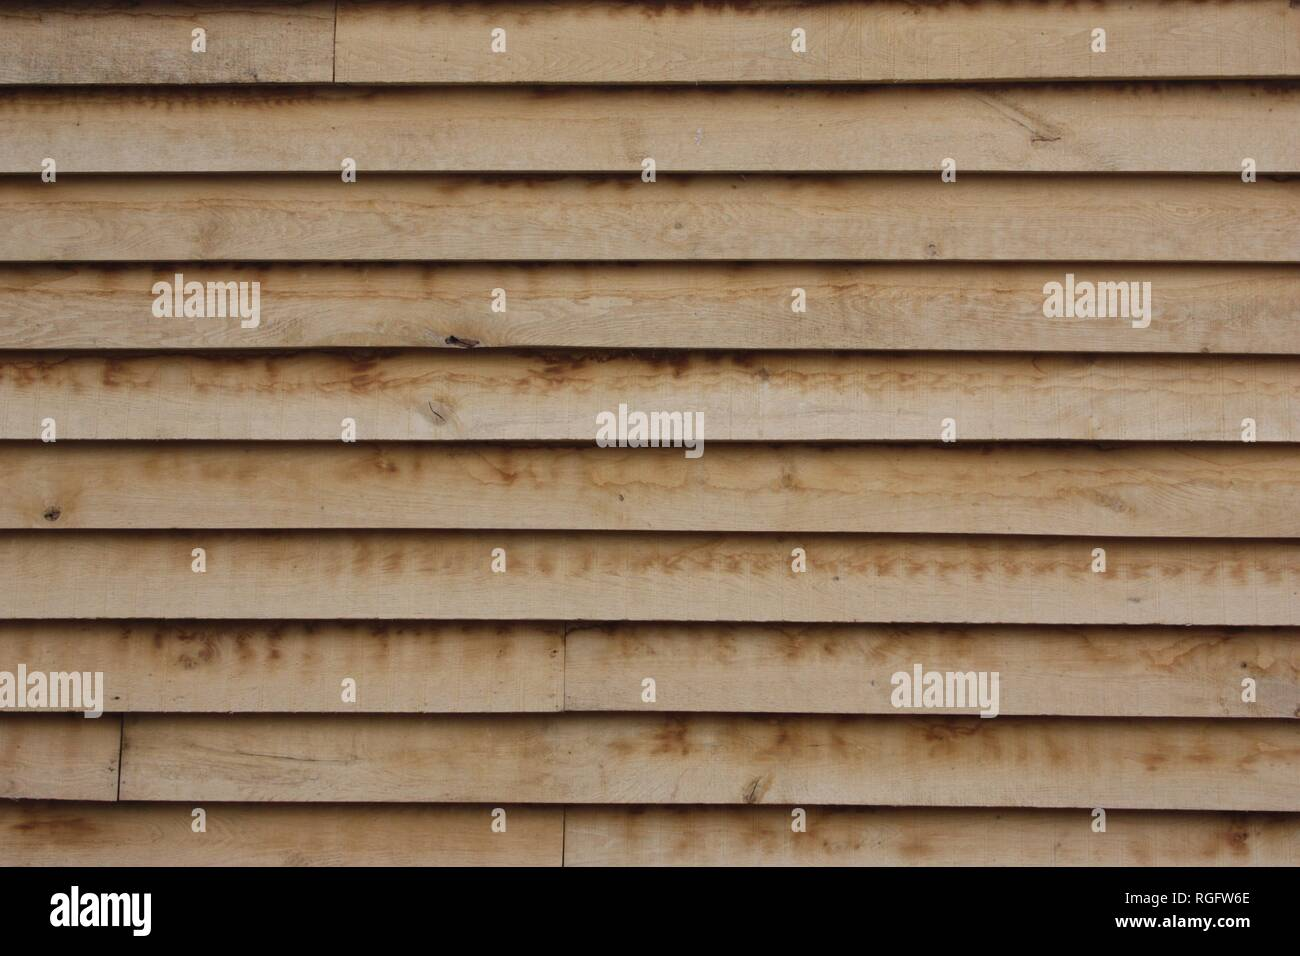 Timber Cladding Stock Photos & Timber Cladding Stock Images